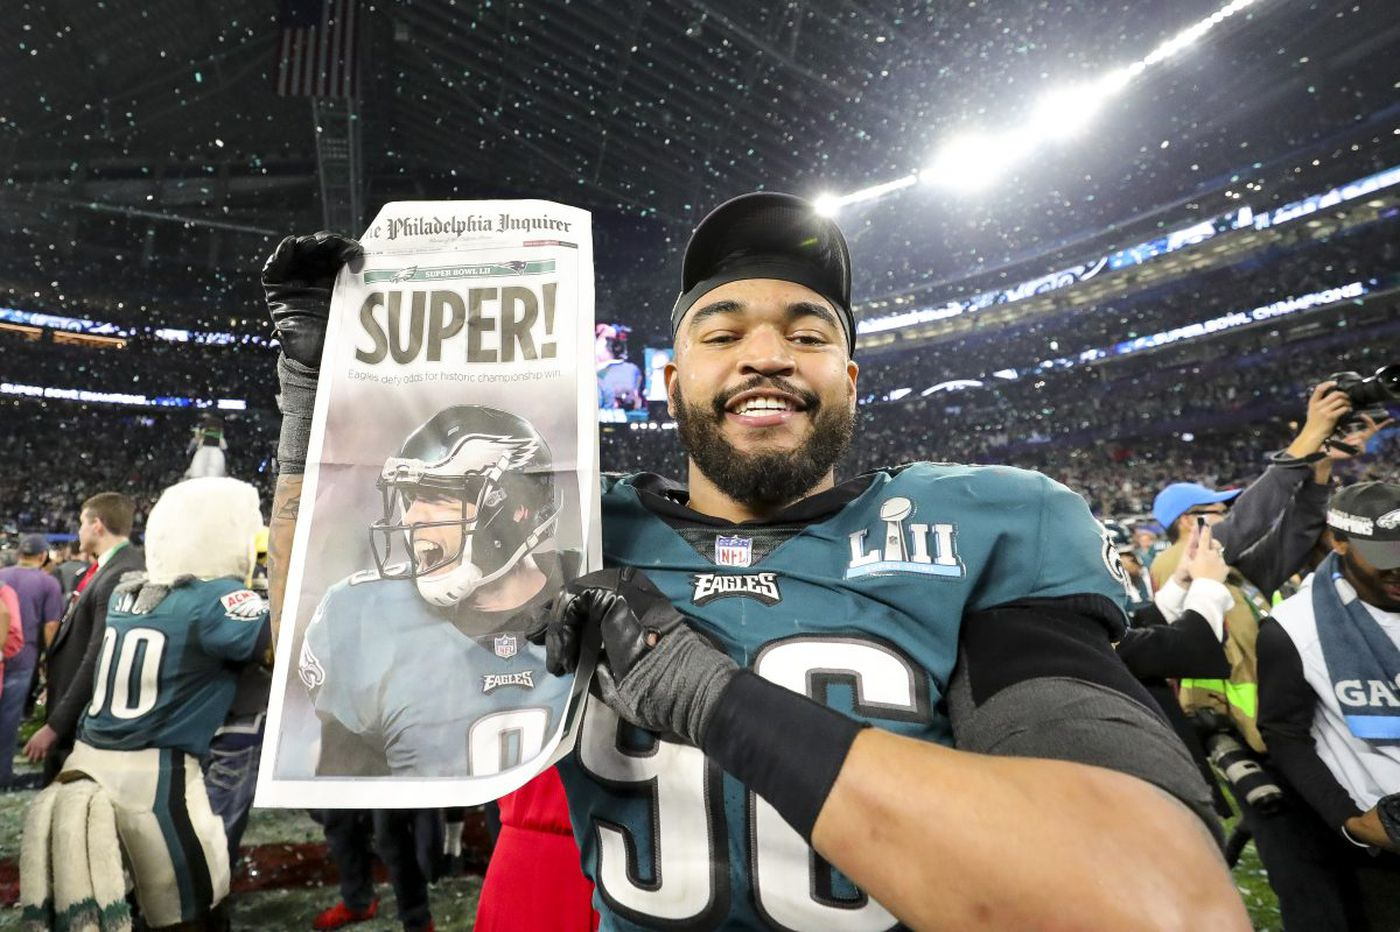 Super Bowl 2018 Philadelphia Inquirer Daily News Front Pages Depict Eagles Win Over Patriots